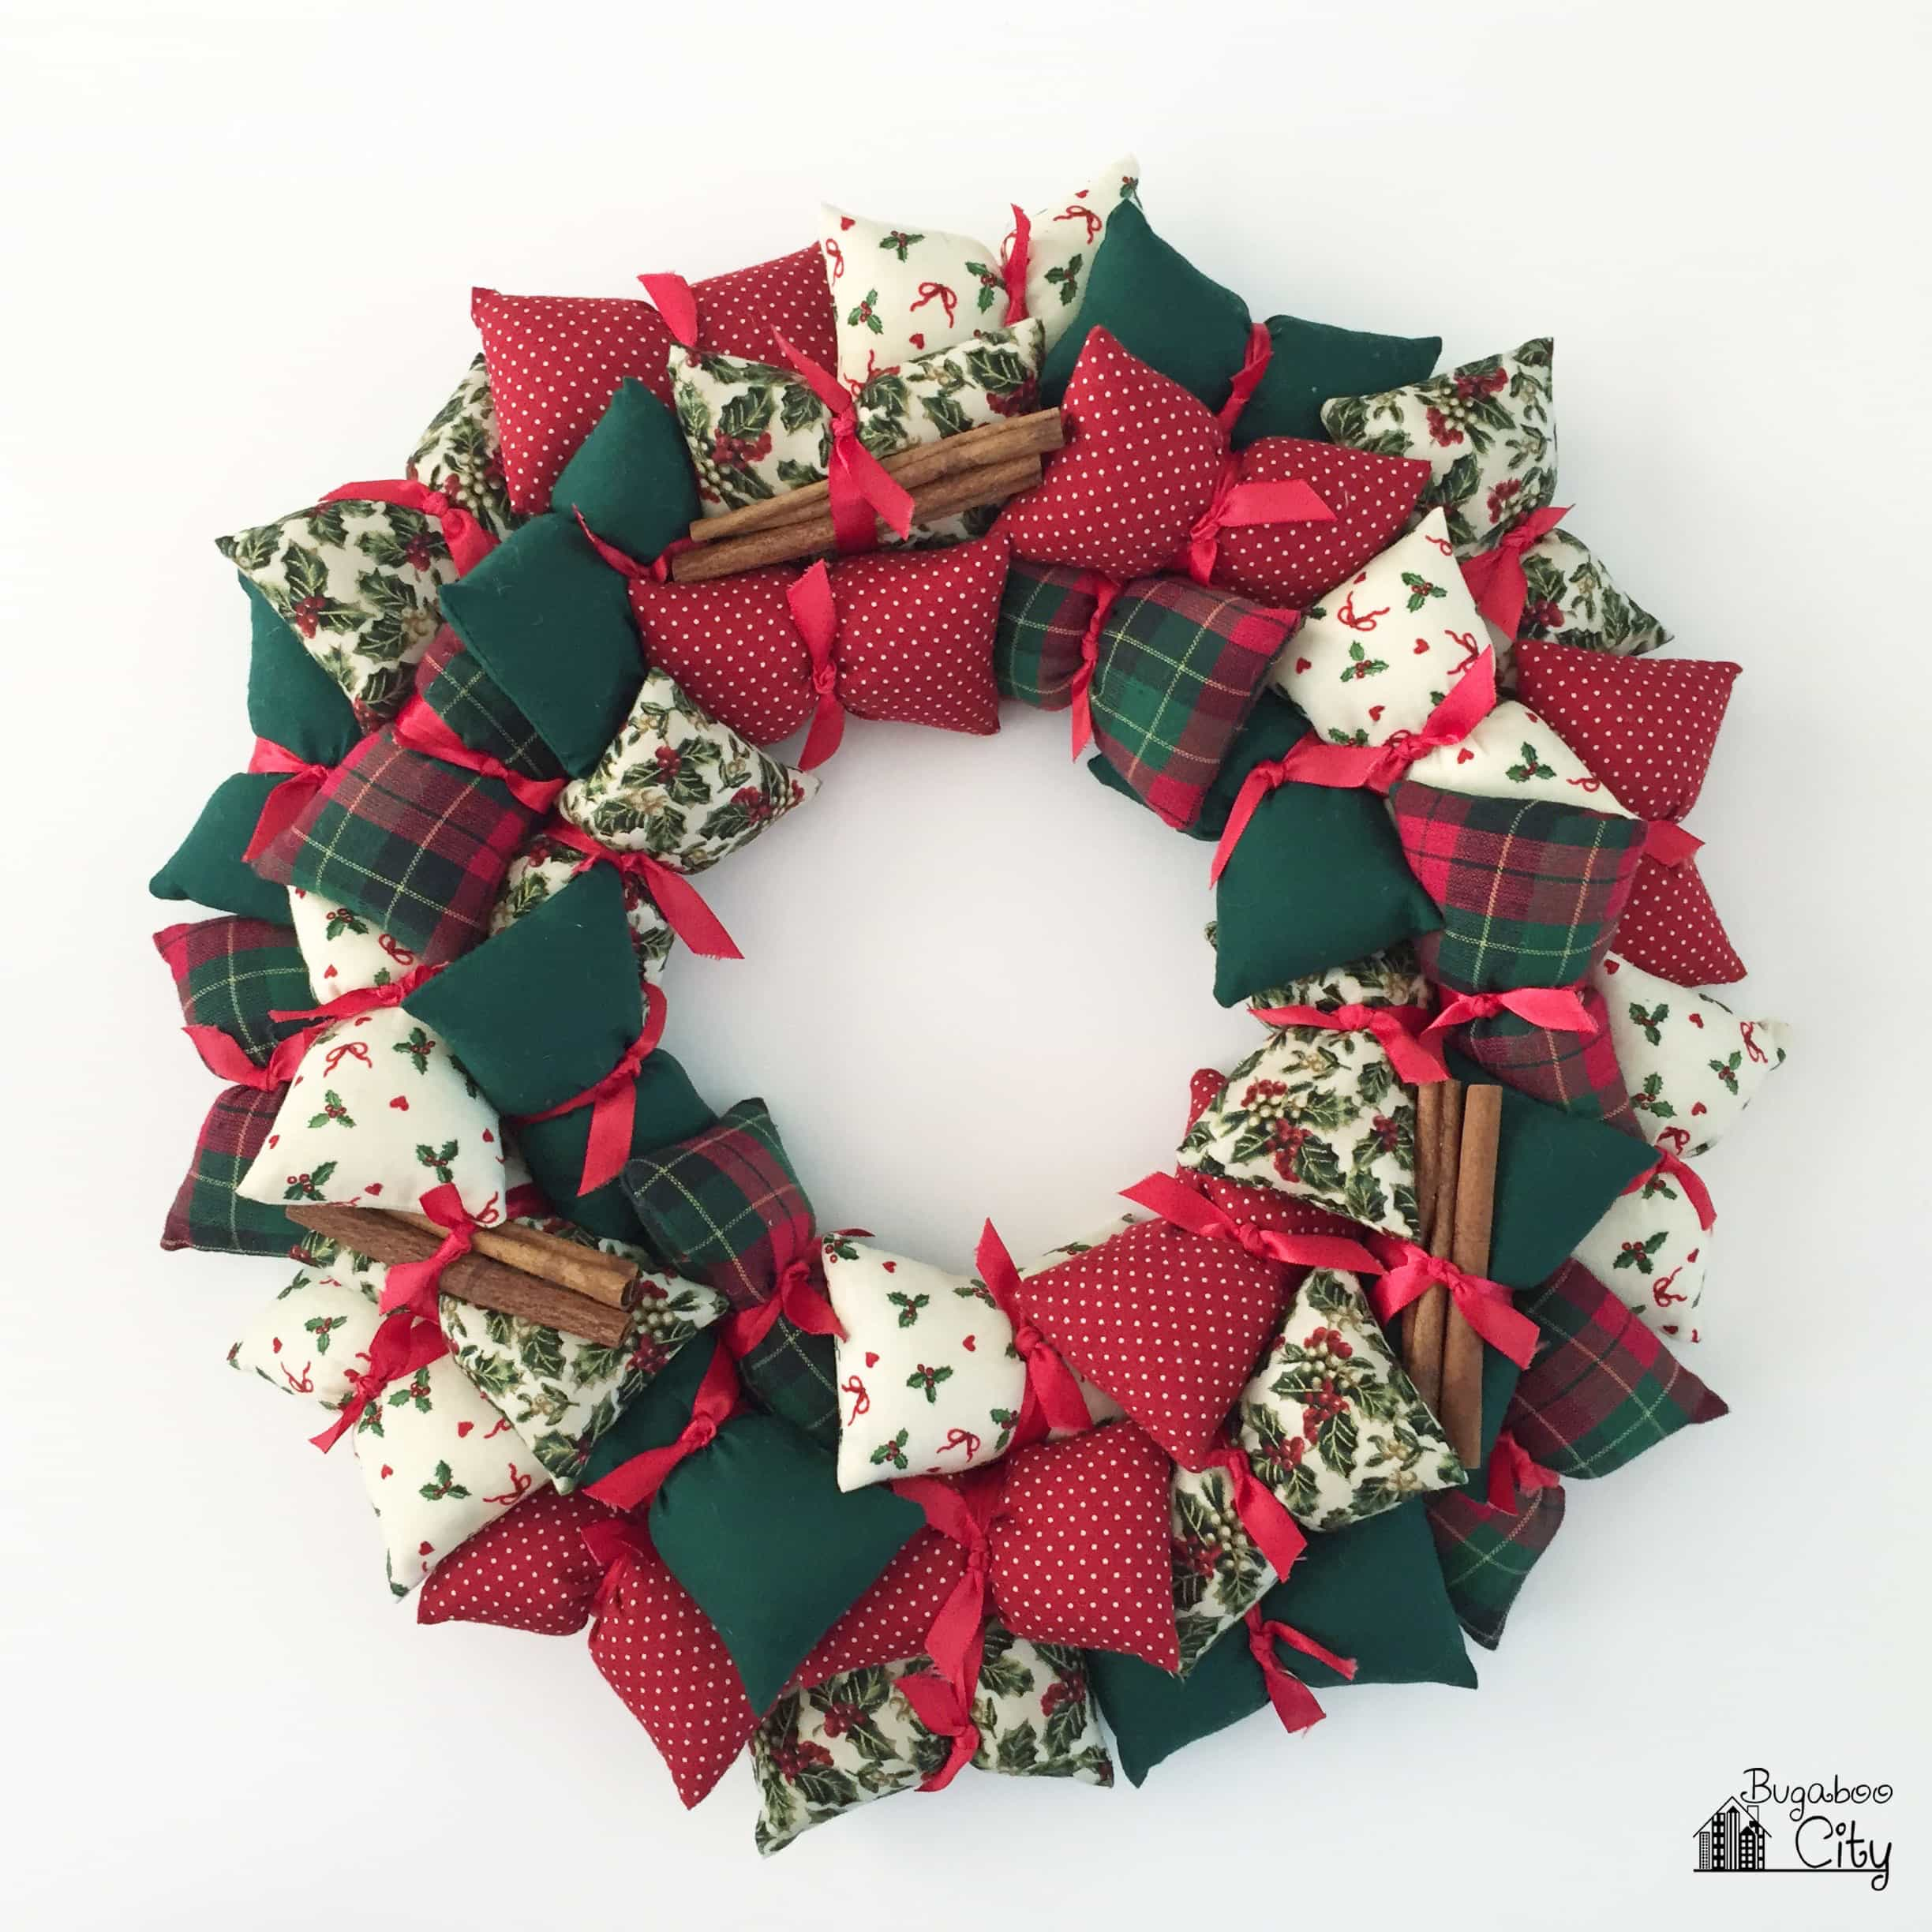 Pillow wreath made with red, white and green fabrics on a white background.